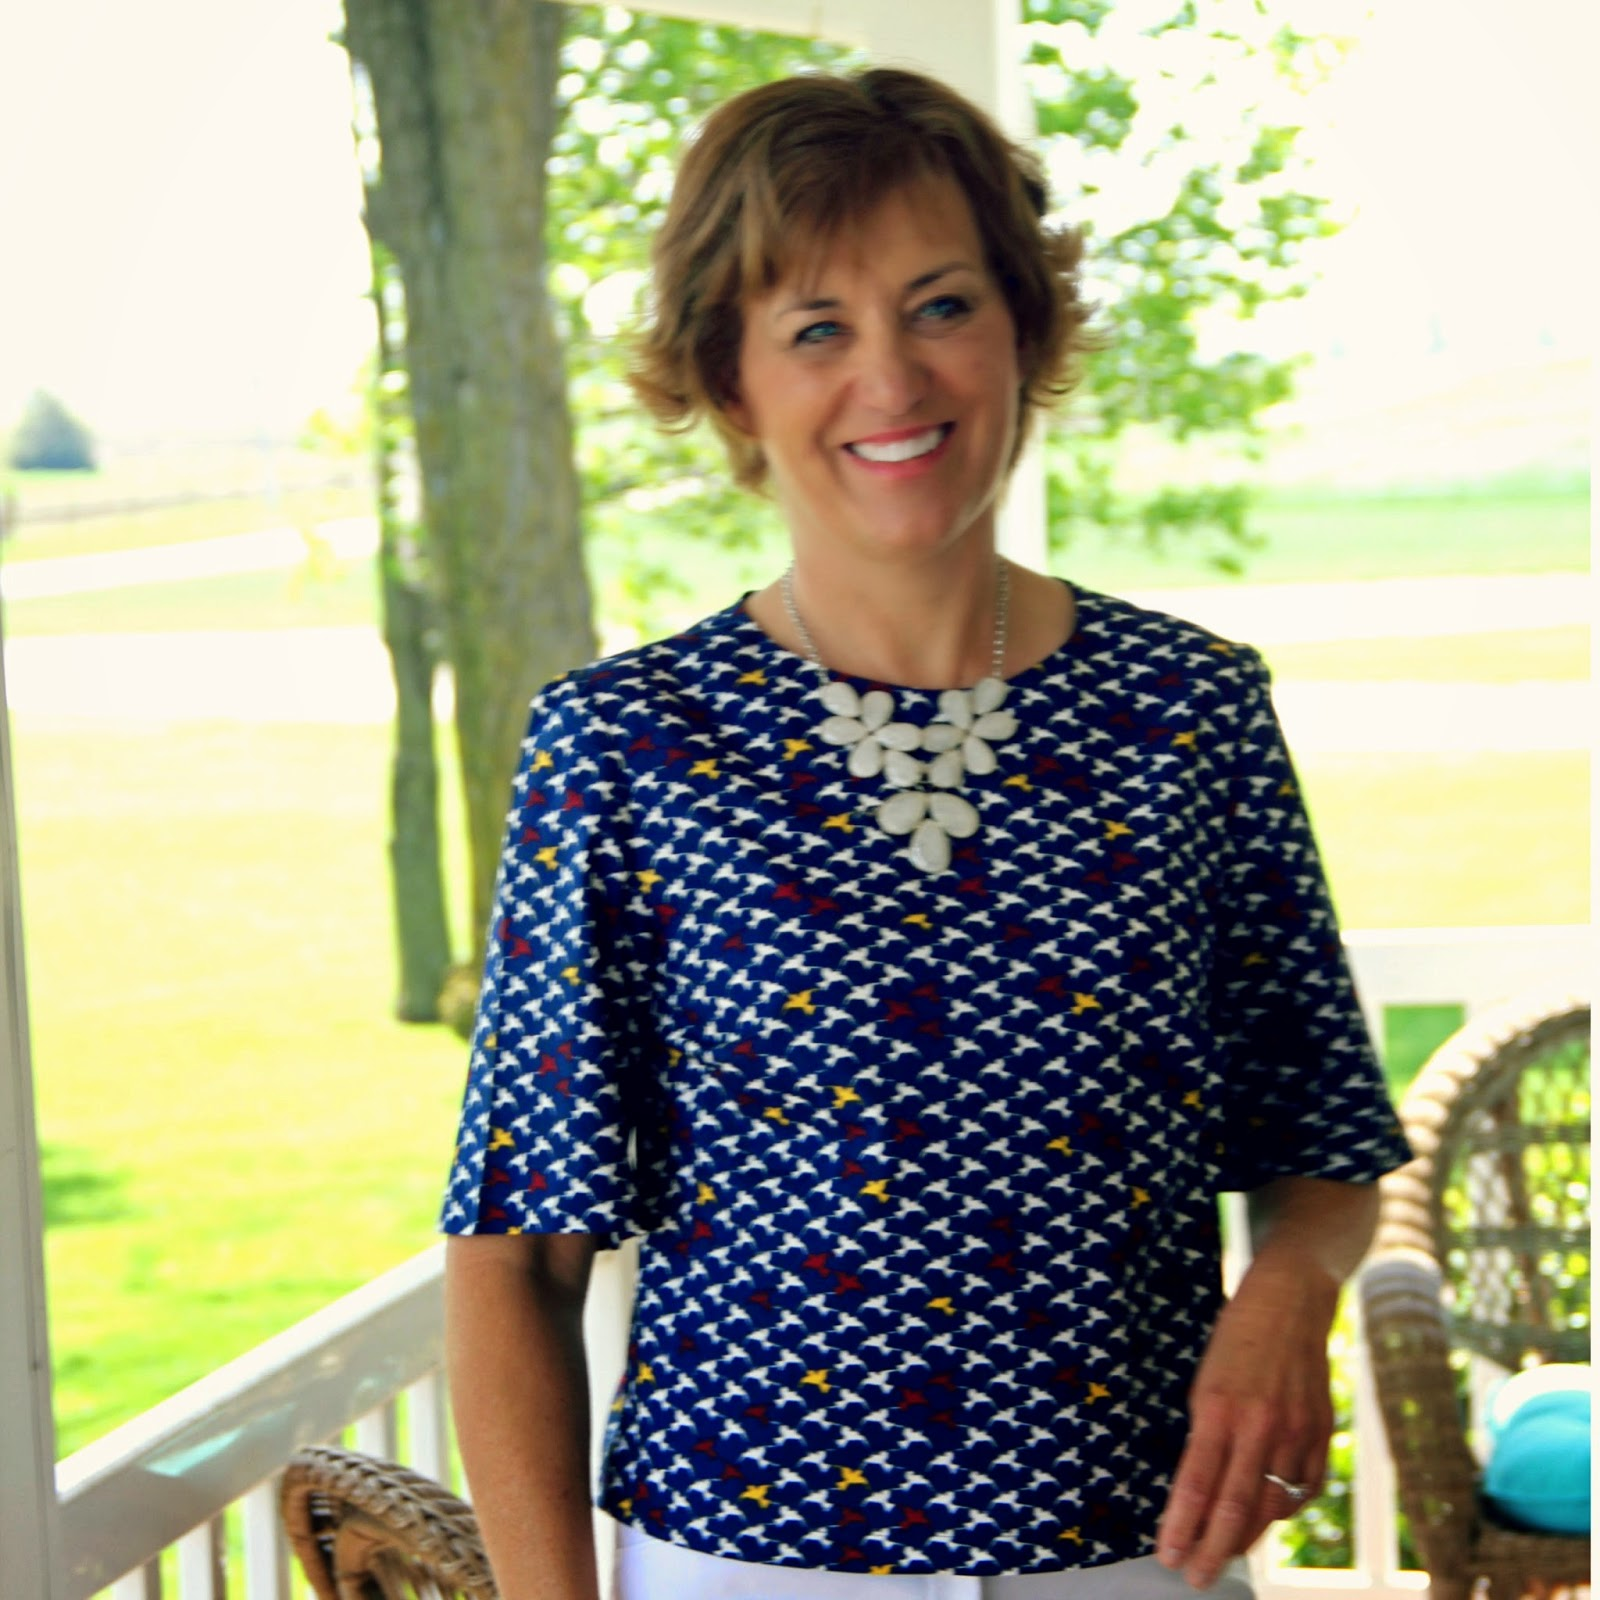 Bocy top for Spring 2015 using Butterick 6175 and a fun bird poplin print